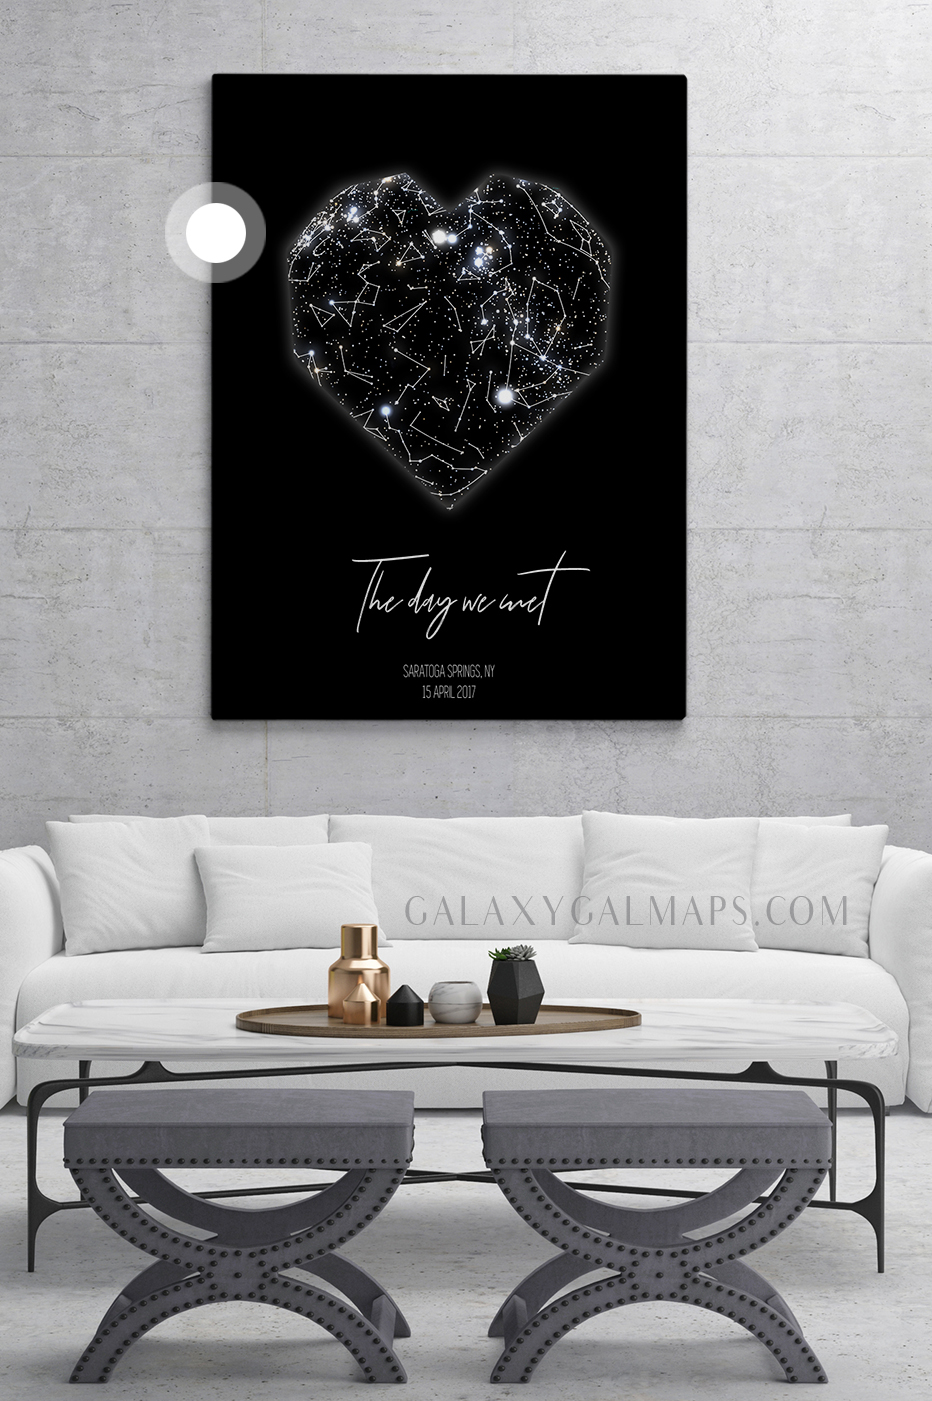 star map by date and location romantic gift wall art 1 year down print 1 year anniversary gift gift for husband gift for wife 1st anniversary